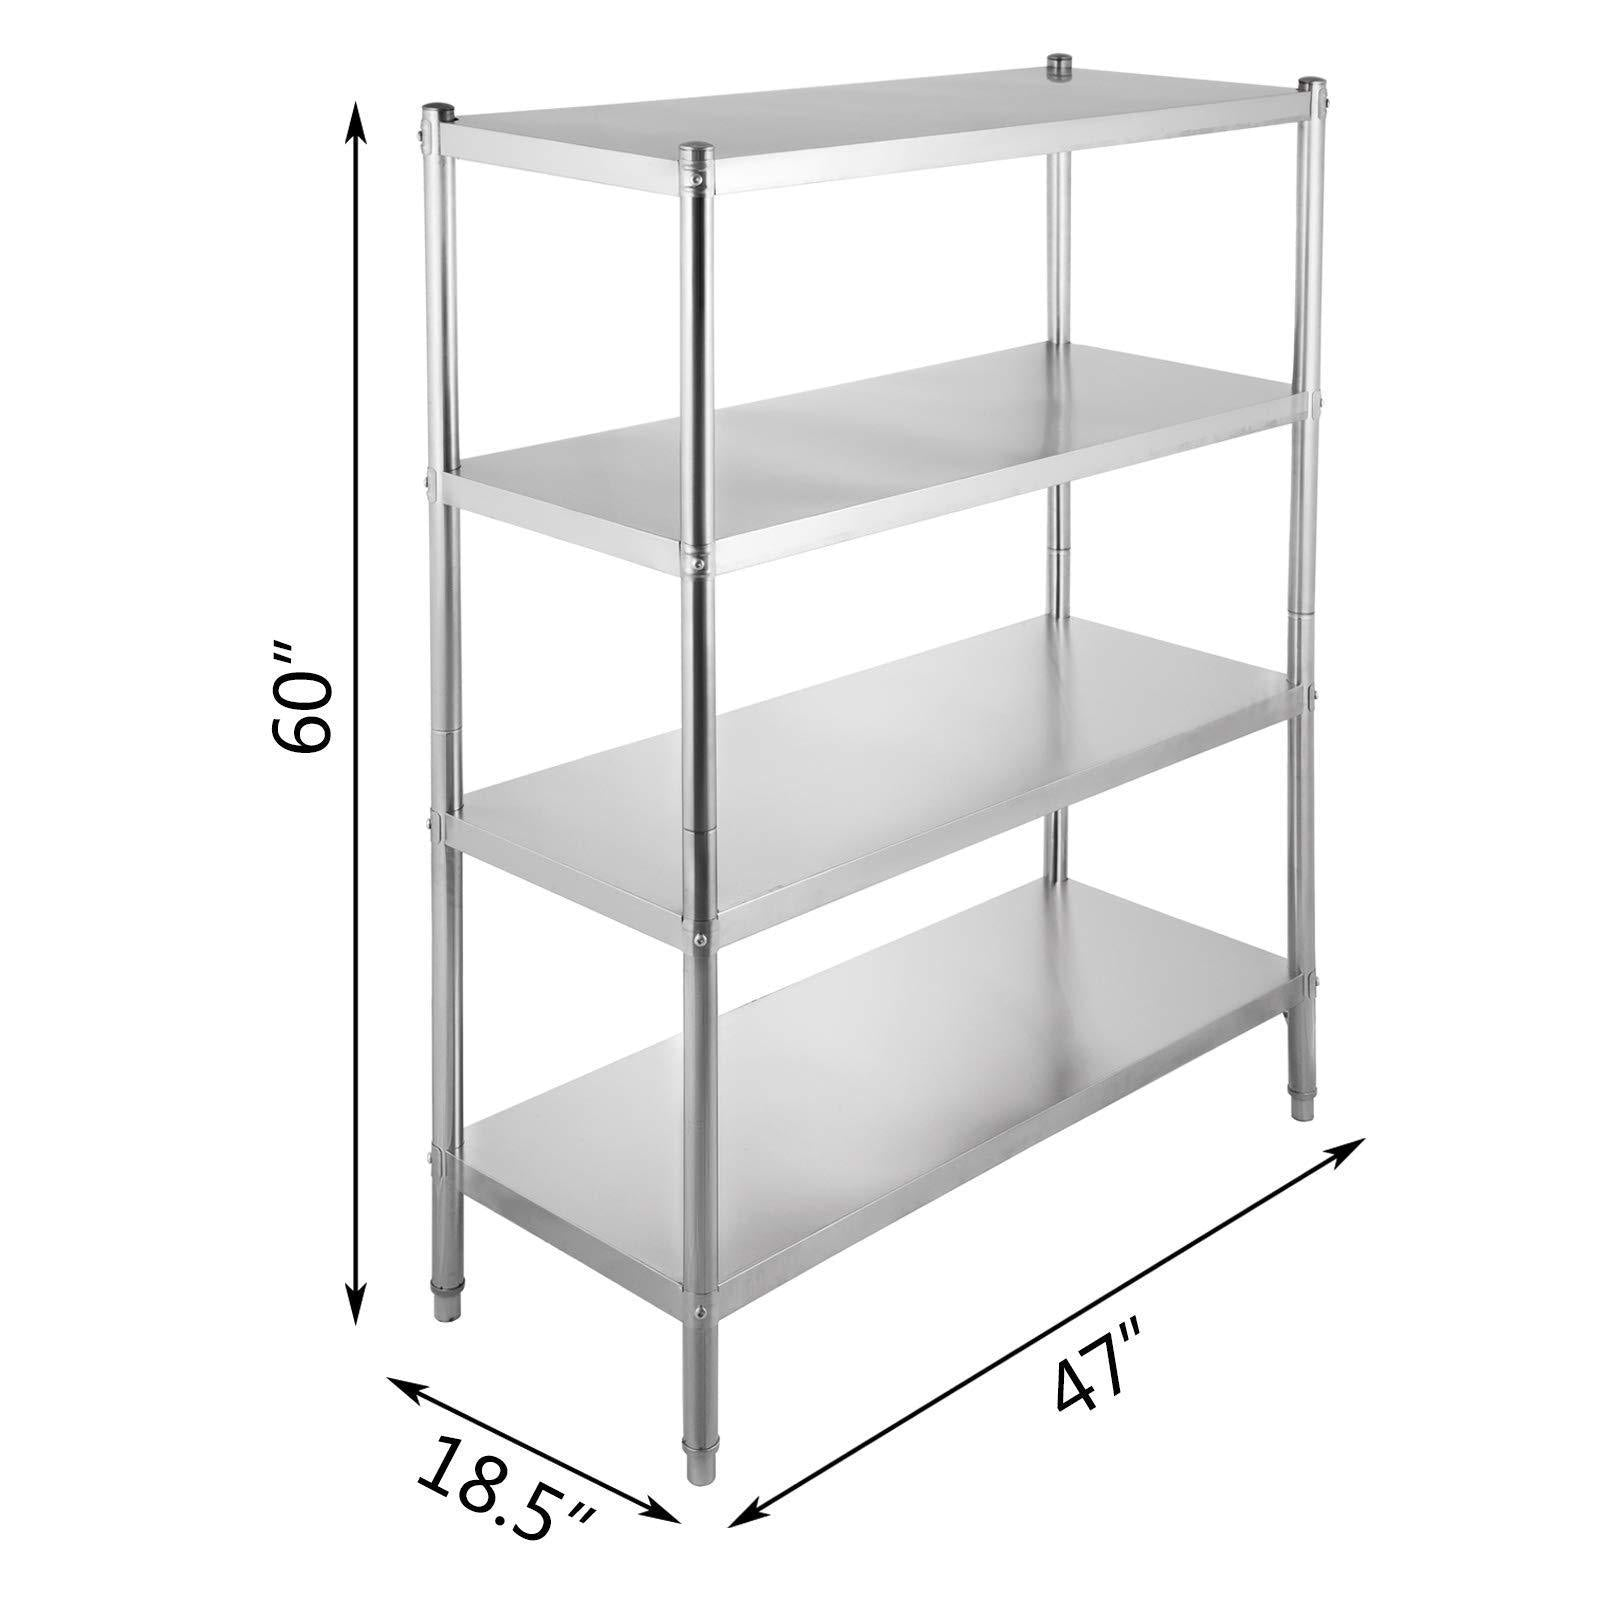 Buy happybuy stainless steel shelving units heavy duty 4 tier shelving units and storage shelf unit for kitchen commercial office garage storage 4 tier 400lb per shelf